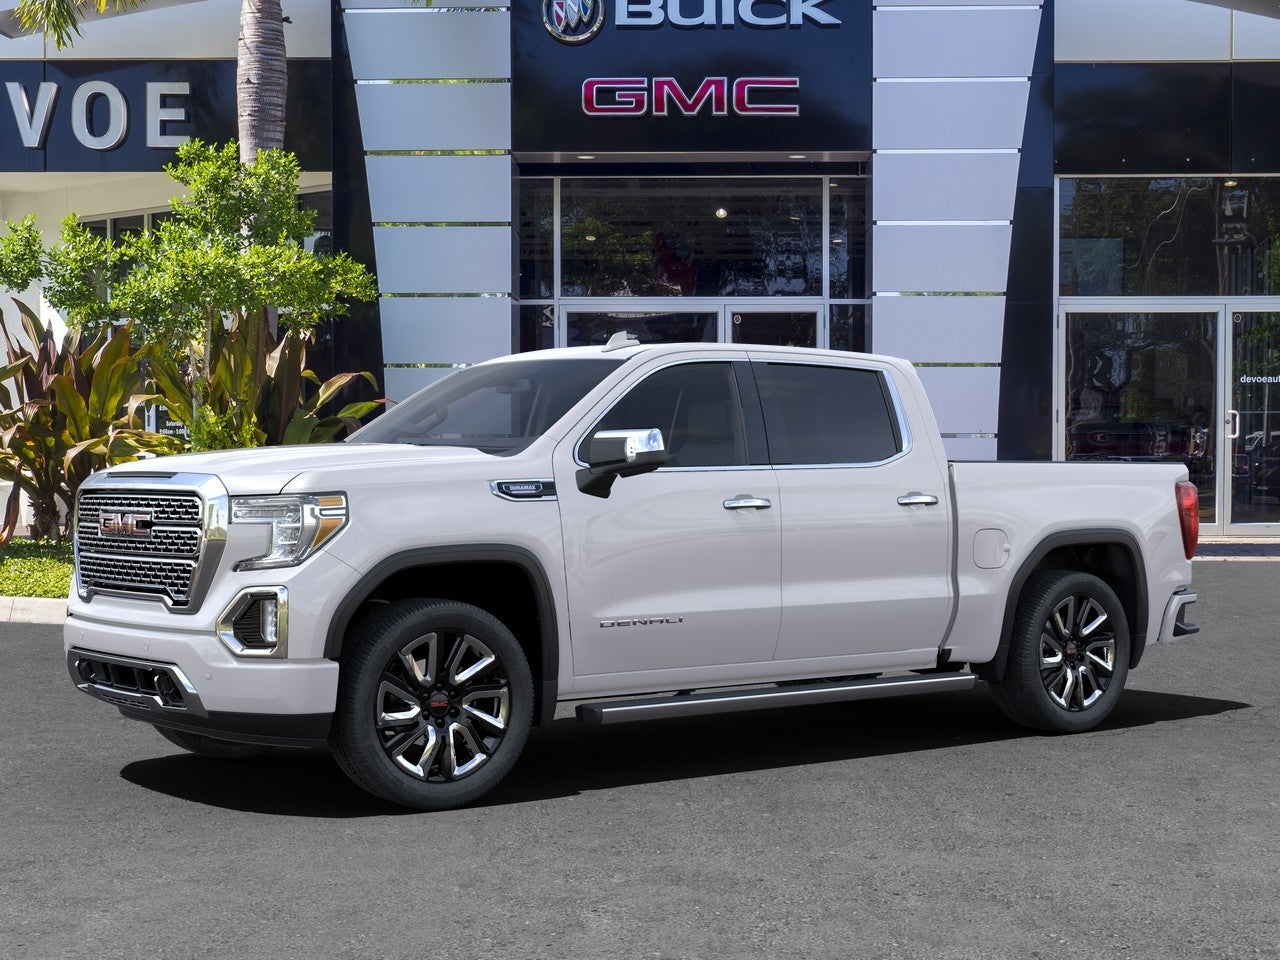 2021 GMC Sierra 1500 Crew Cab 4x4, Pickup #T21160 - photo 22